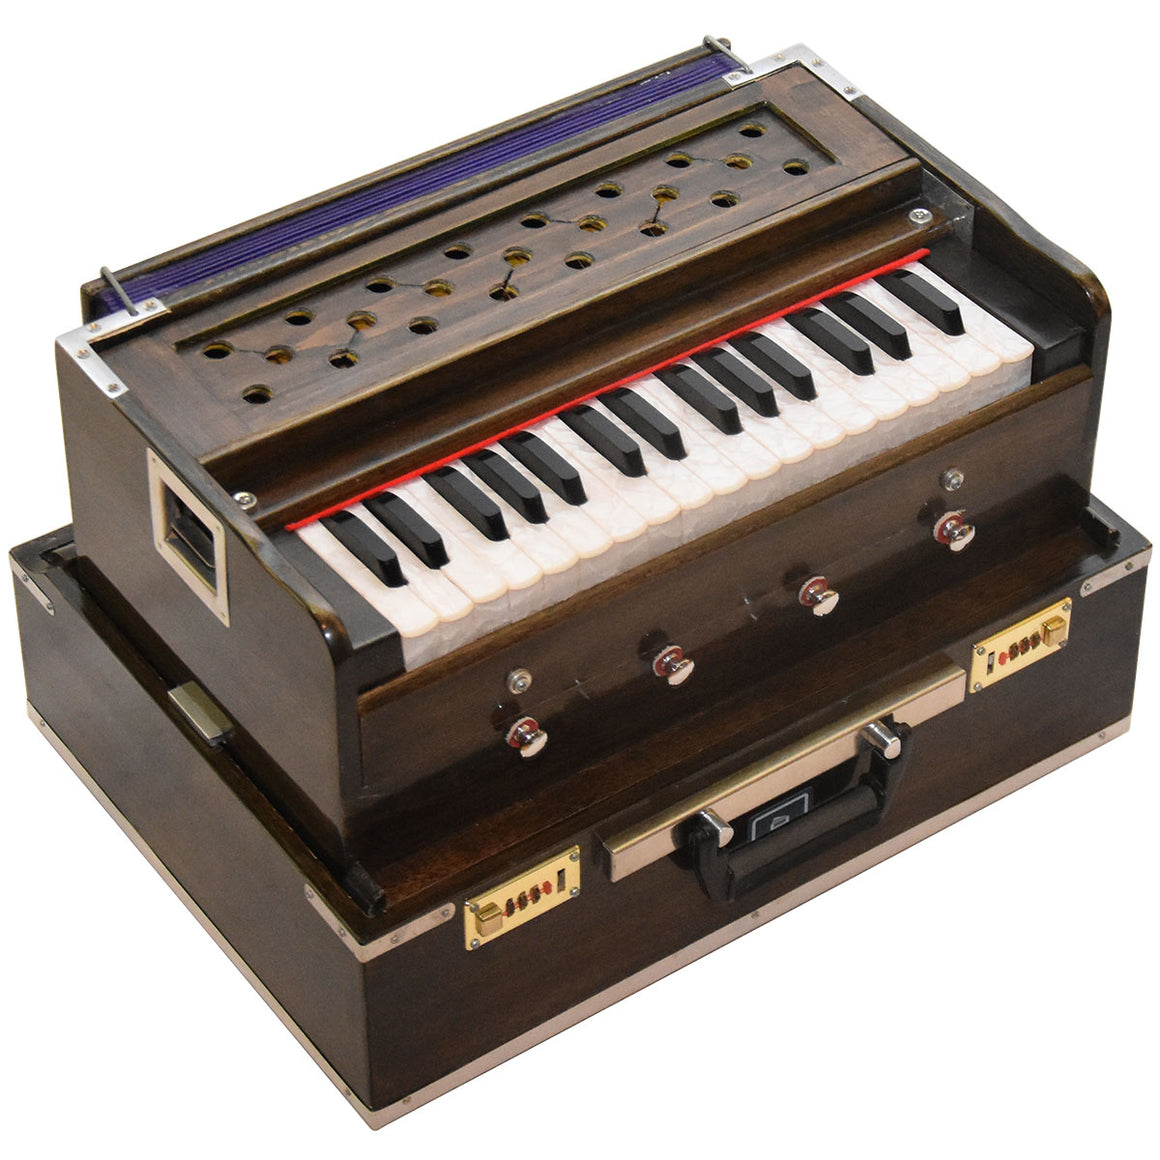 Saras Travel 32 Harmonium